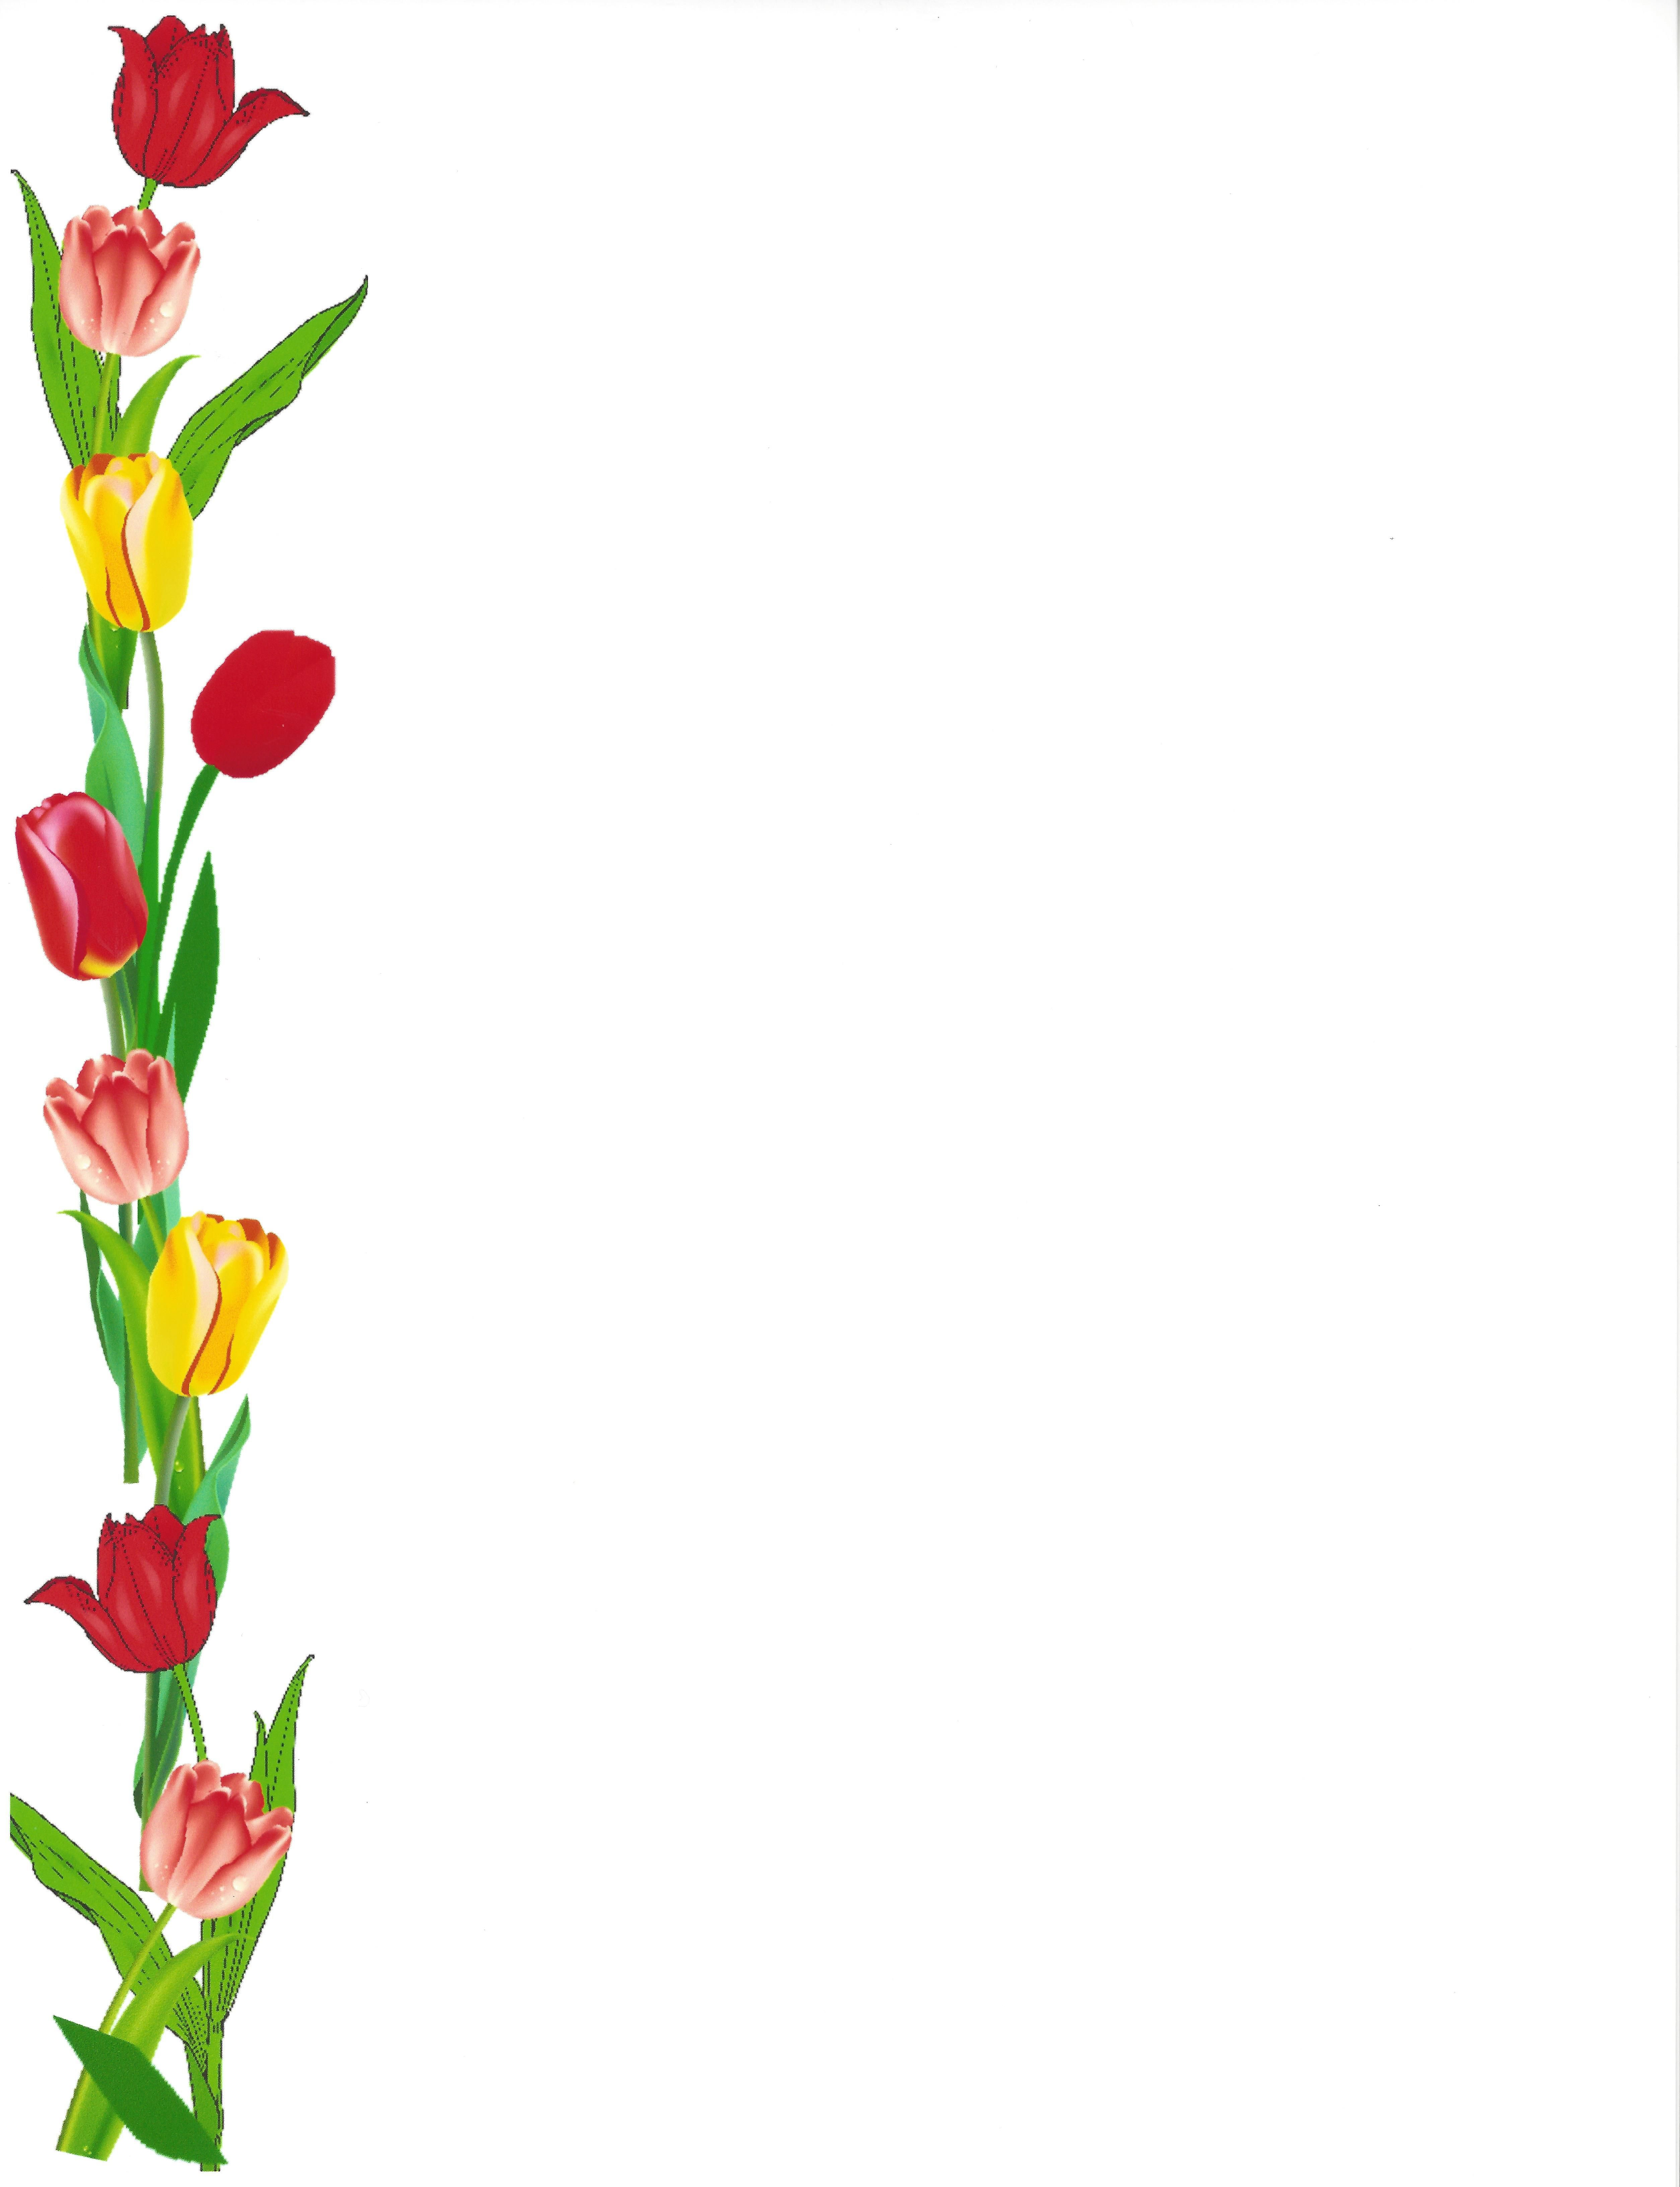 Border, tulips left side | Borders | Borders for paper, Page ... banner freeuse download